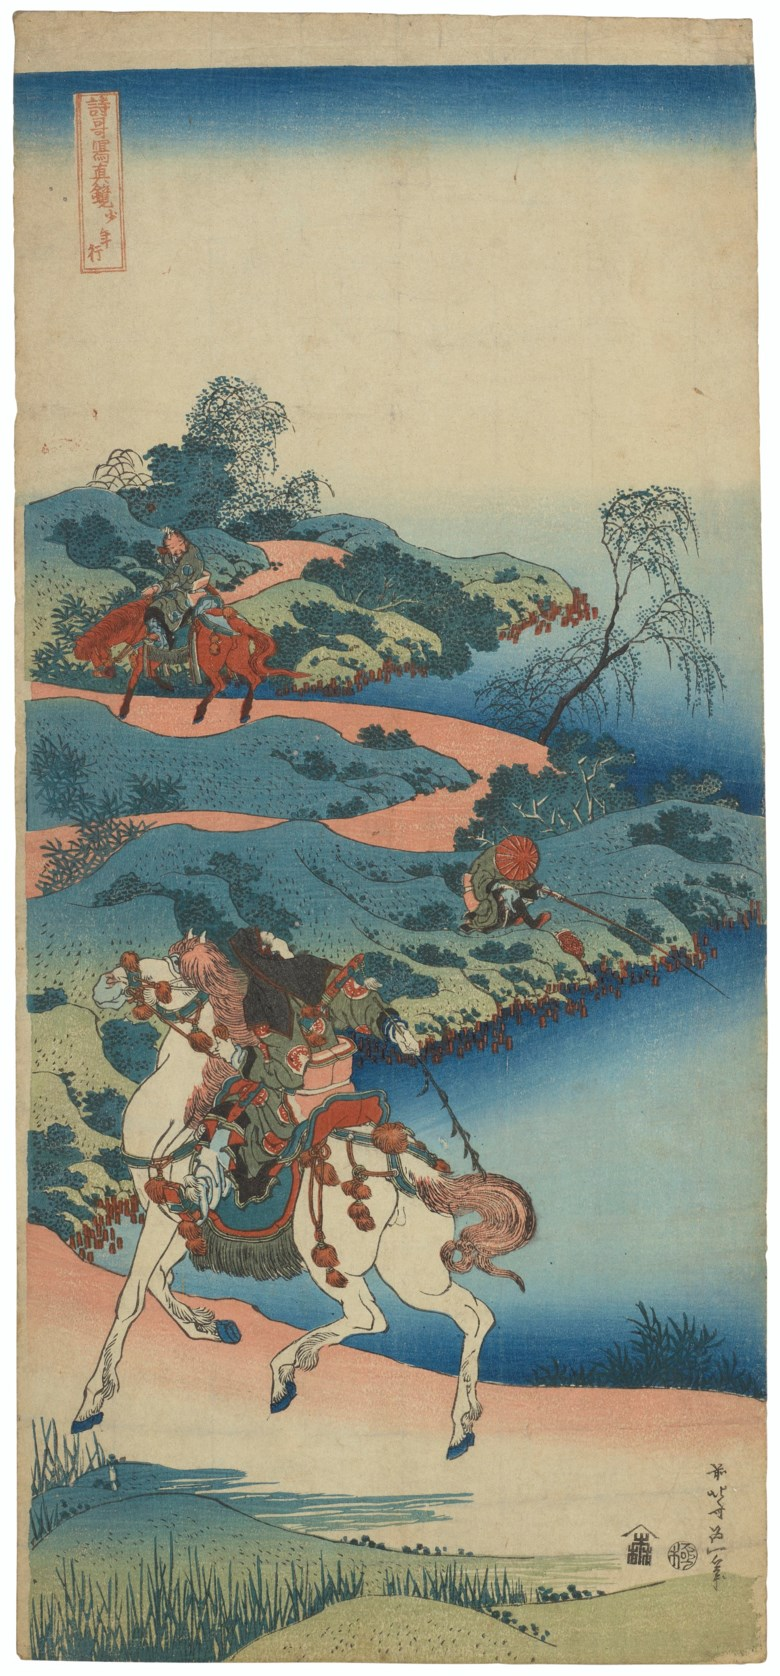 Katsushika Hokusai (1760-1849), Shonenko (Youth setting out), from the series Shika shashin kyo (A true mirror of Chinese and Japanese poetry). Woodblock print. 20⅛ x9⅛ in (51.1 x 23.2 cm). Estimate $10,000-15,000. Offered inJapanese and Korean Arton 16 March 2021 at Christie's New York